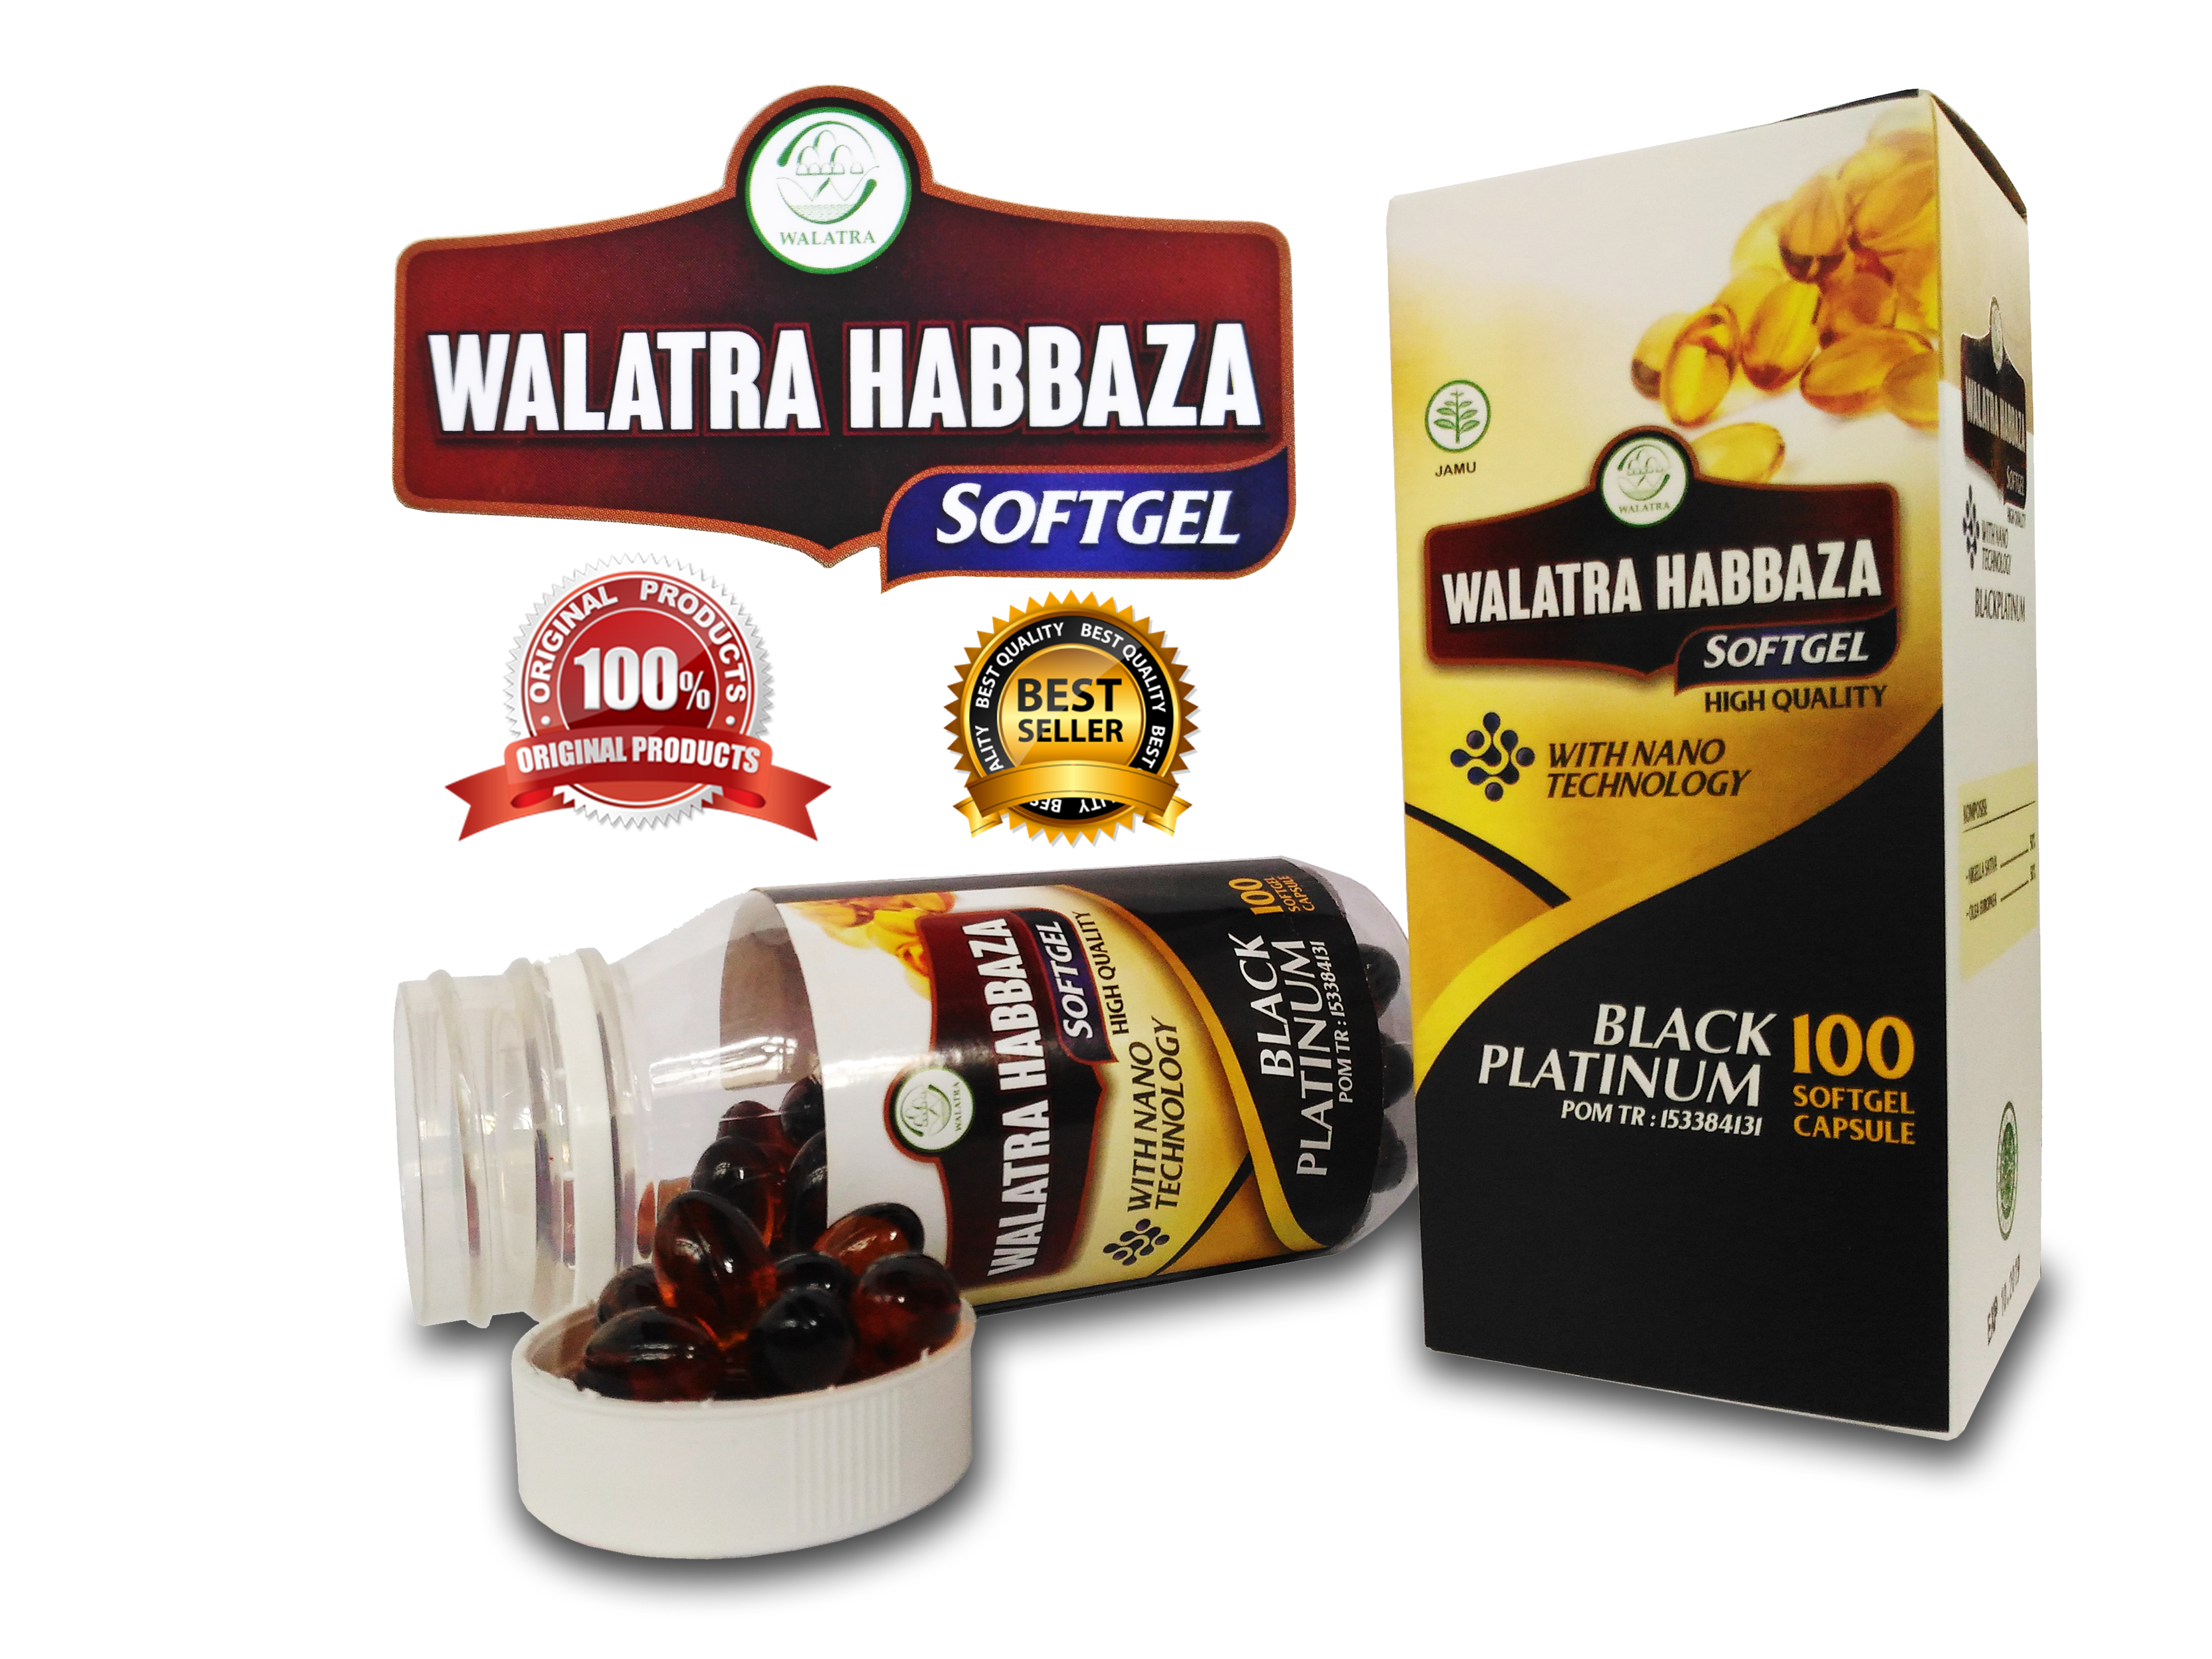 Habbaza Softgel